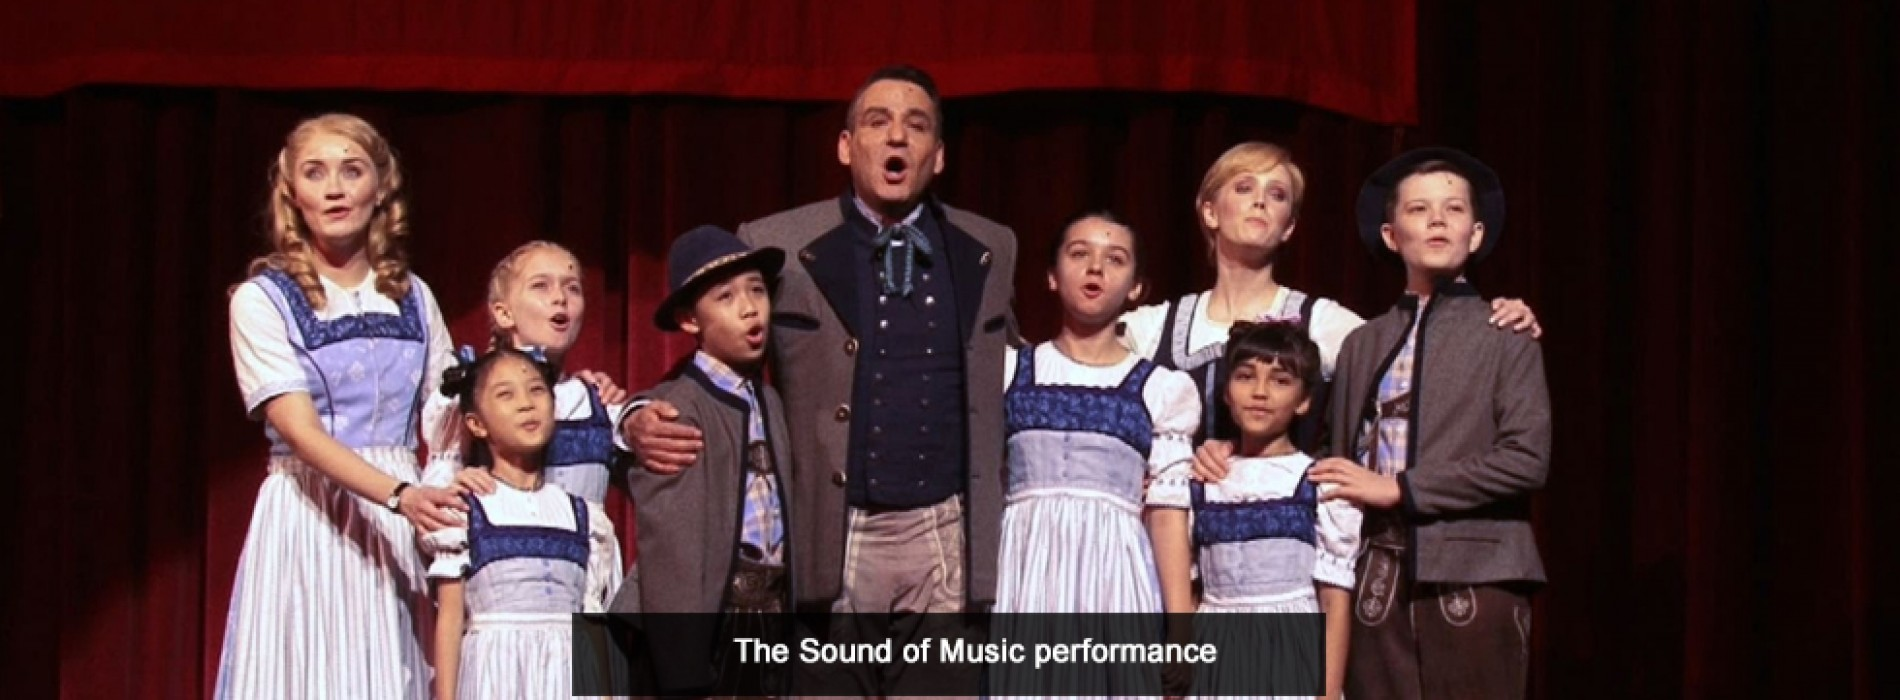 American musical group 'The Sound of Music' to perform for the first time in South Asia